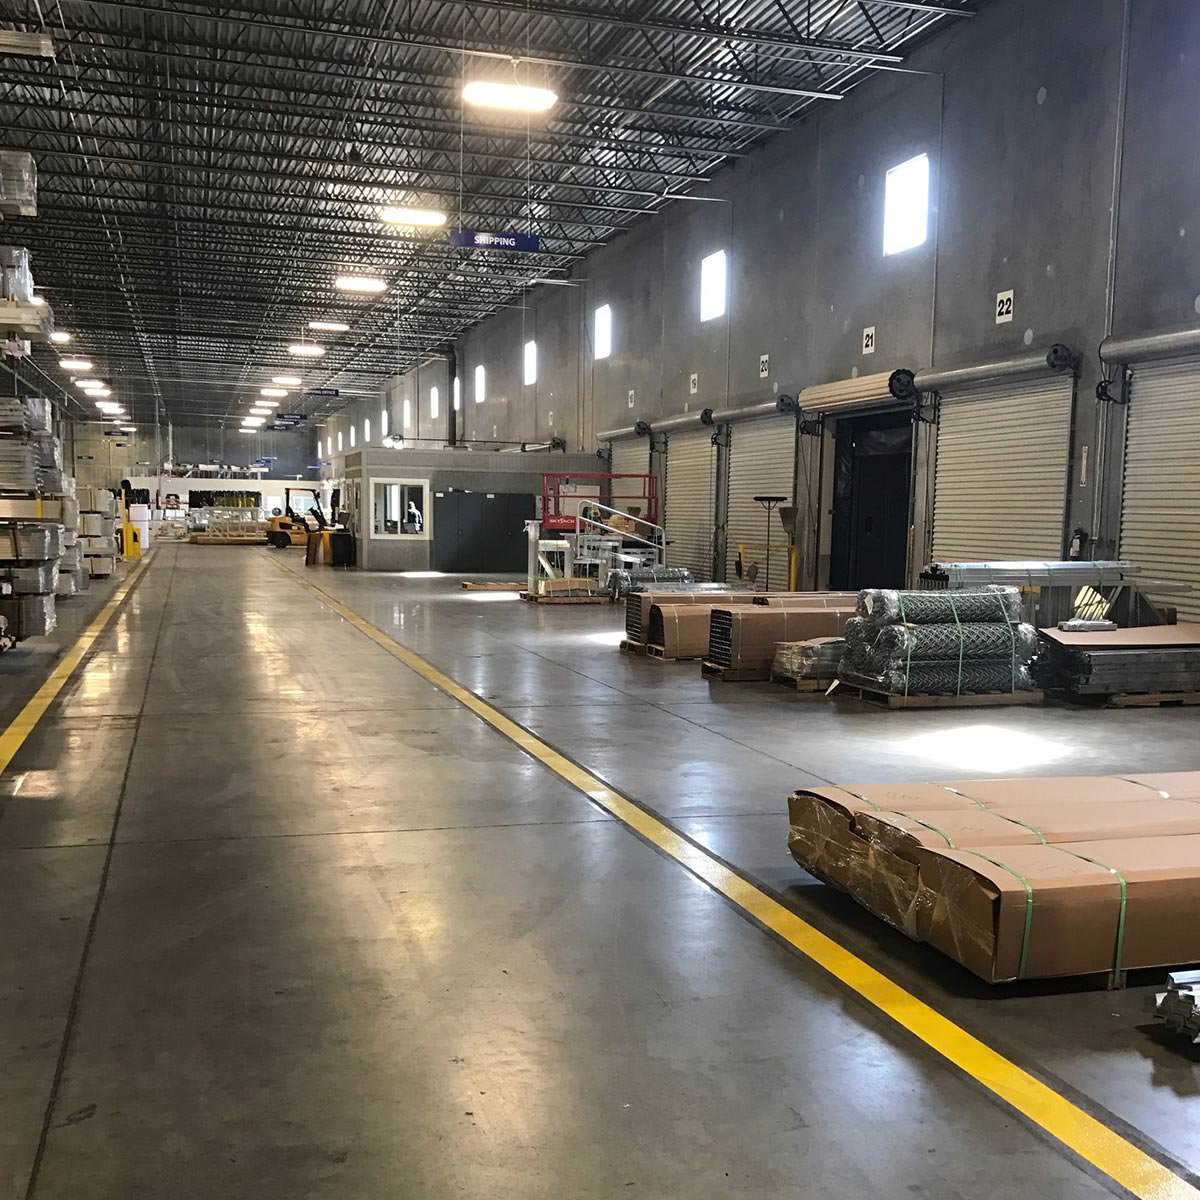 A view inside the GT Grandstand warehouse